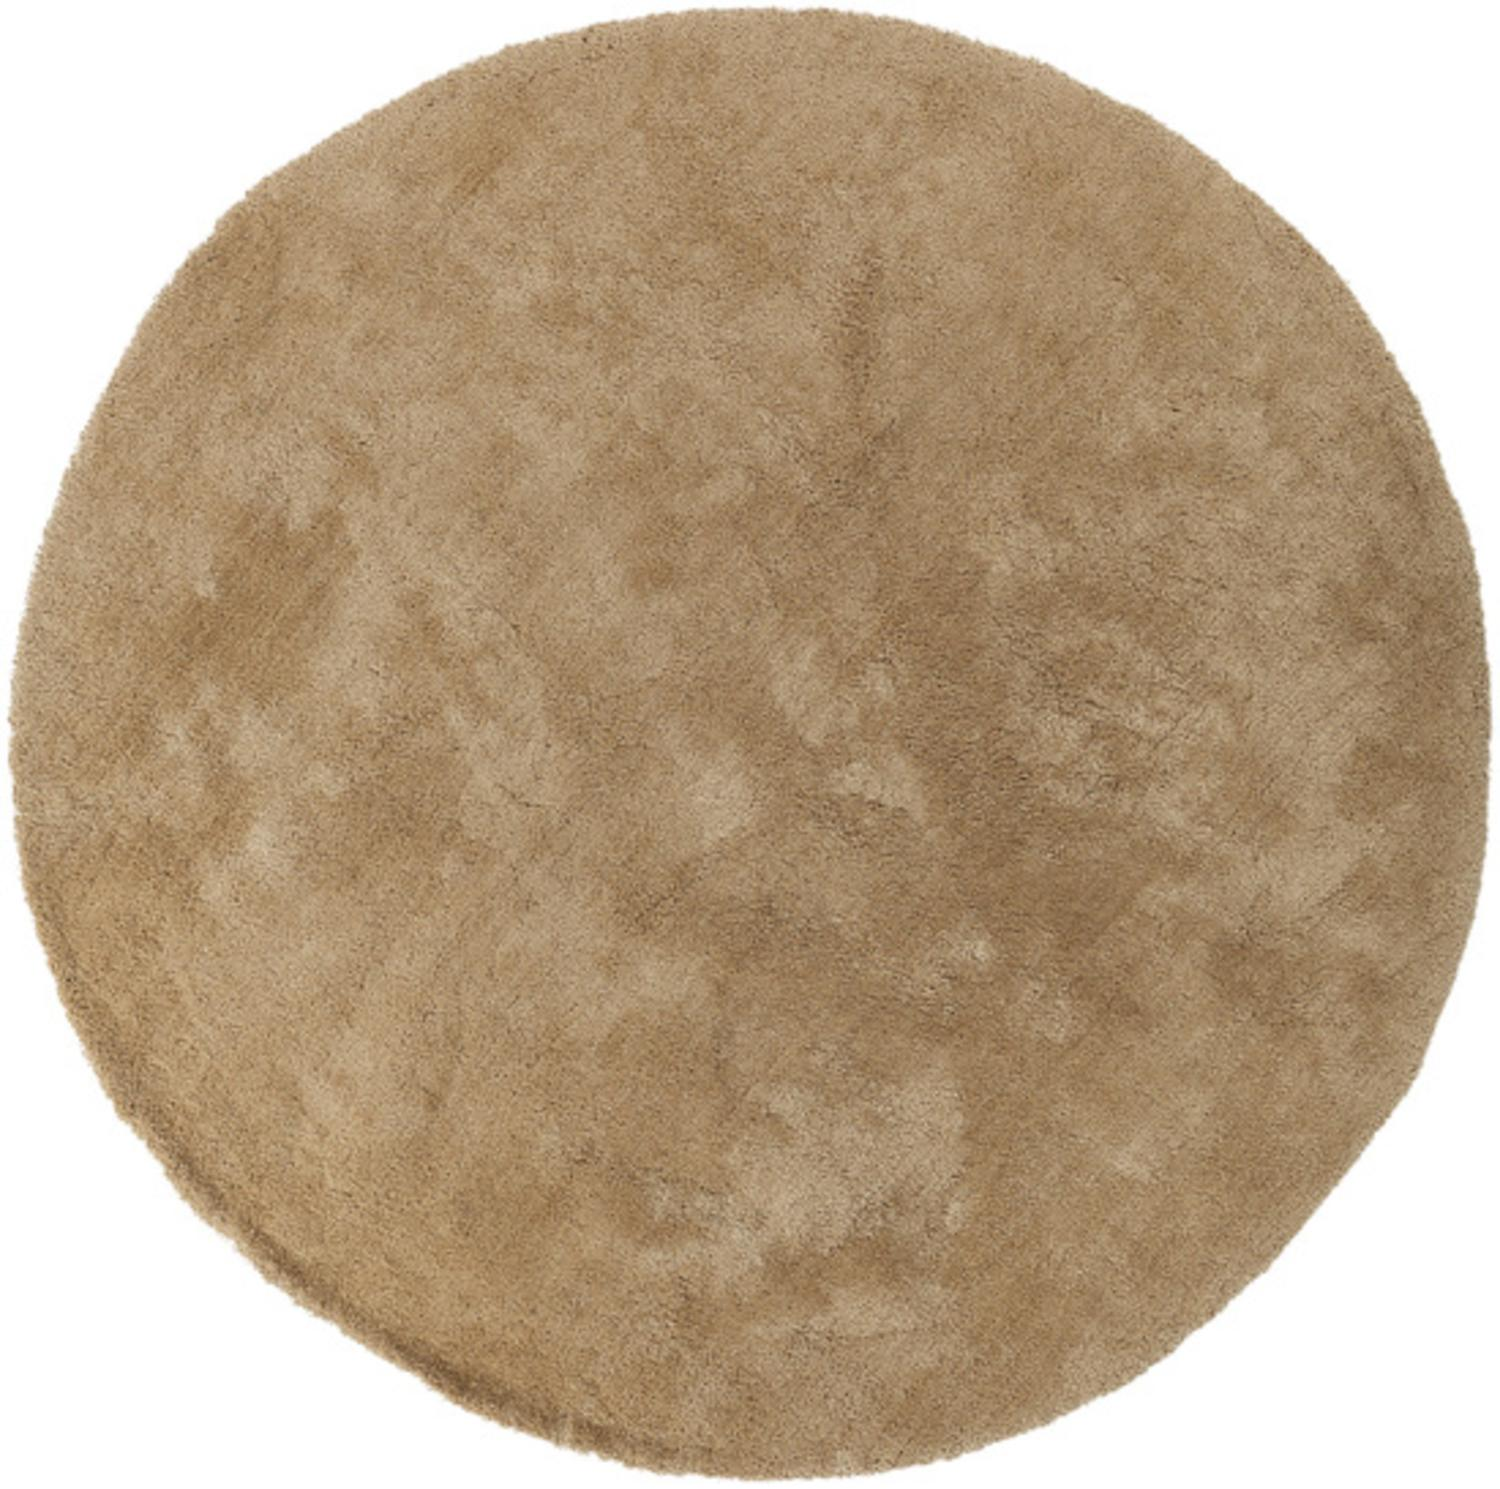 8' Calming Spectrum Marzipan Brown Hand Woven Ultra Plush Round Area Throw Rug